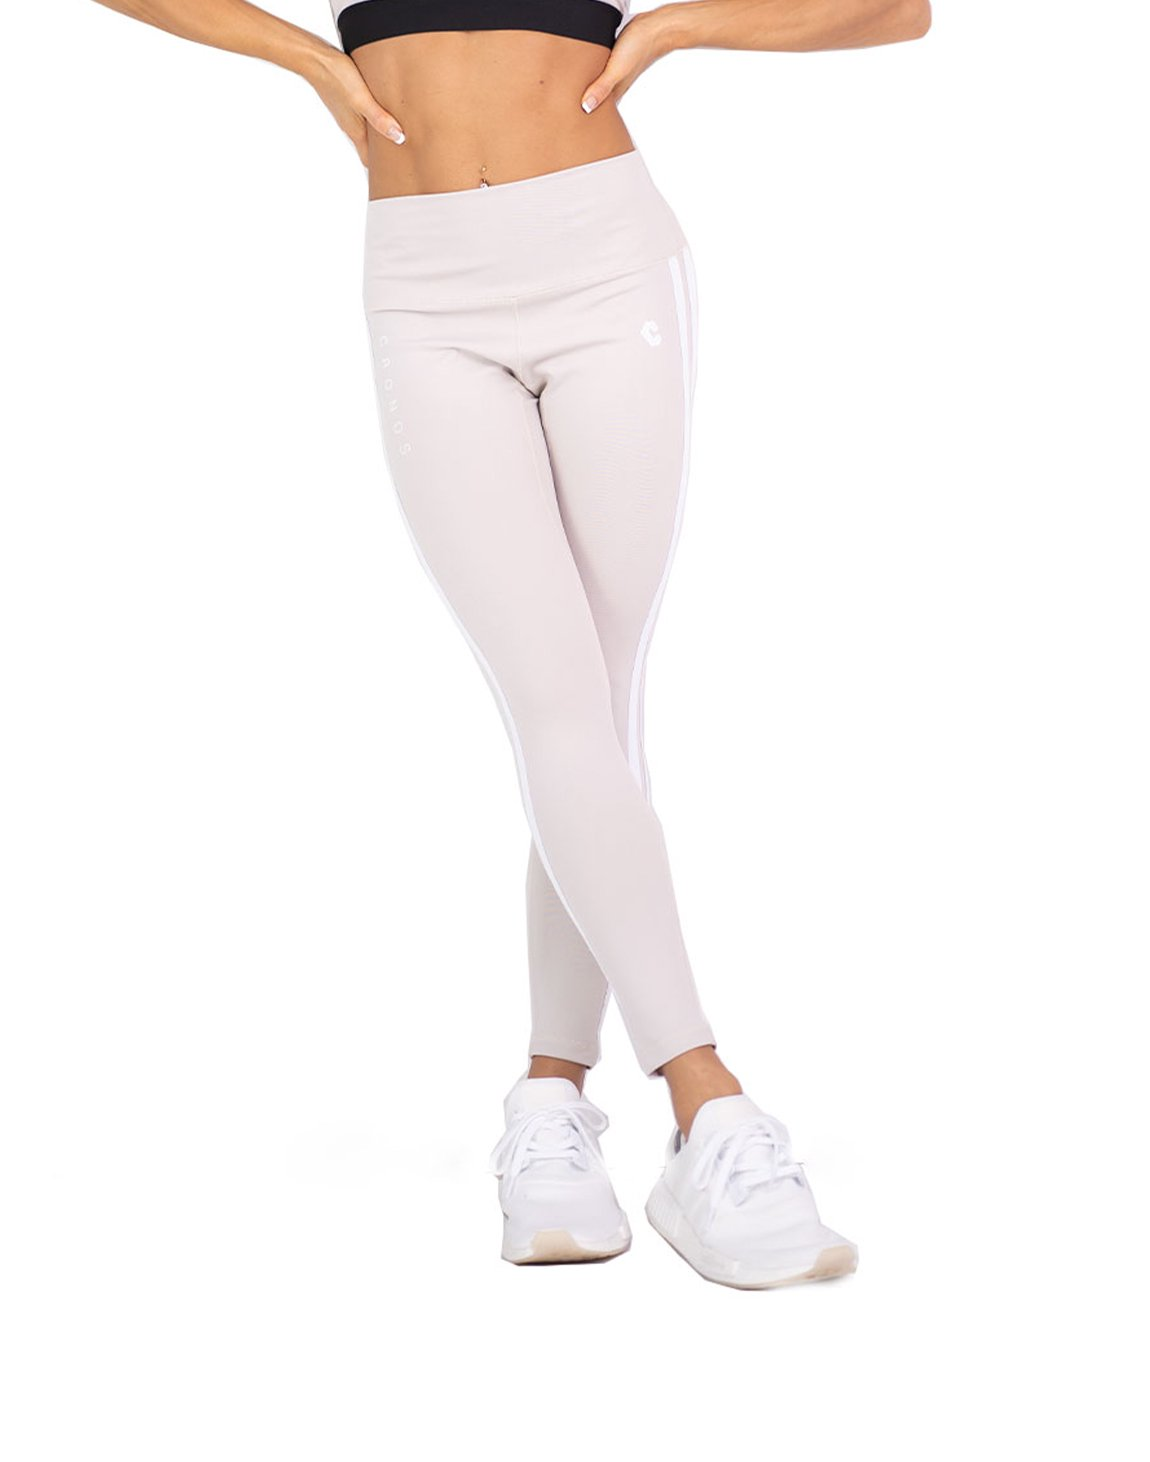 CRONOS MODE 2STRIPE LEGGINS  GRAY